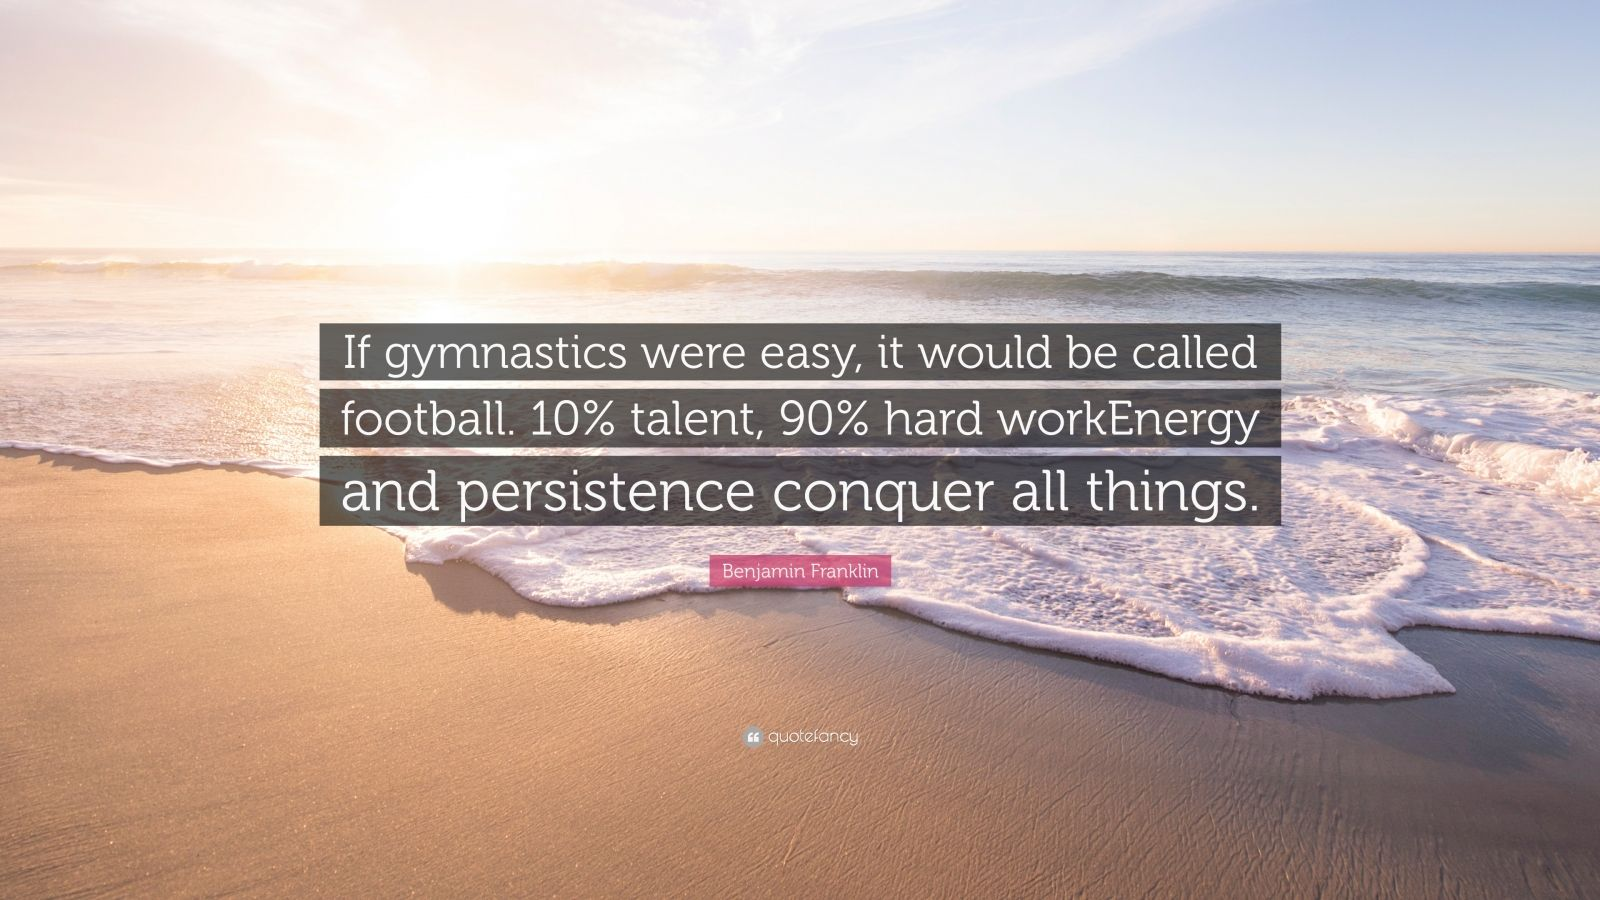 """Benjamin Franklin Quote: """"If gymnastics were easy, it would be called football. 10% talent, 90% hard workEnergy and persistence conquer all things."""""""